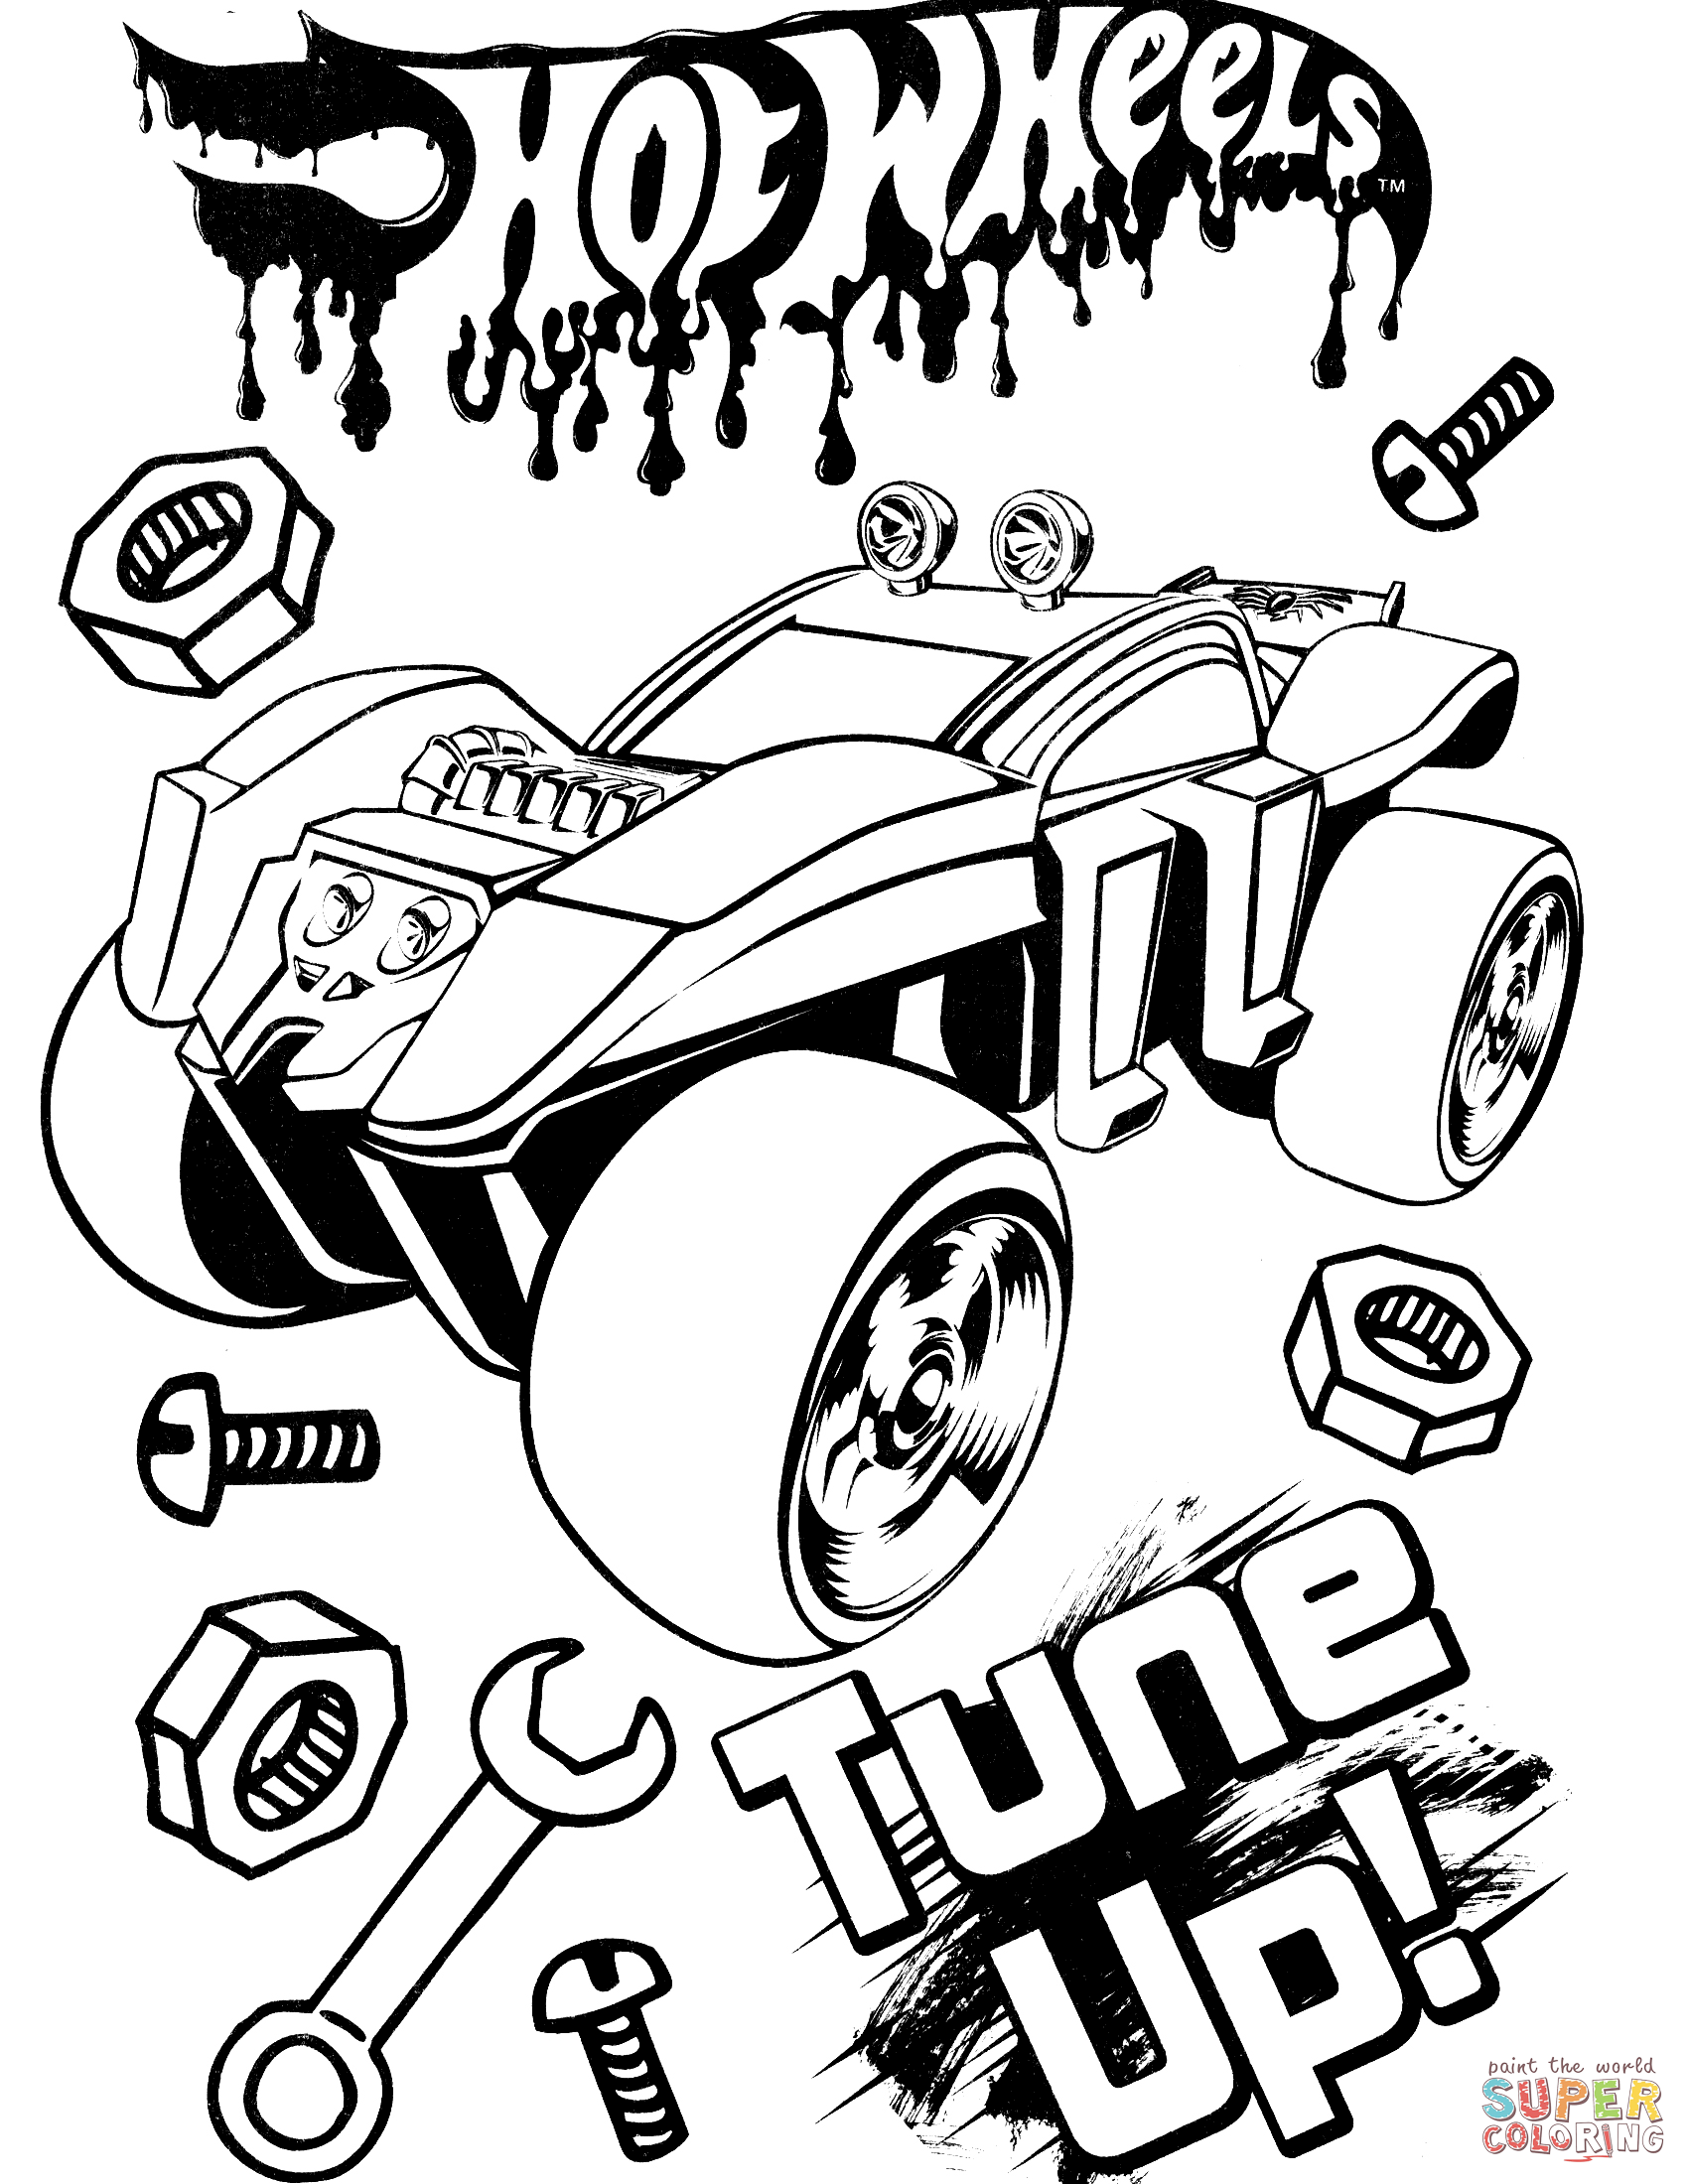 Hot wheels drawing at free for personal for Hot wheels motorcycle coloring pages